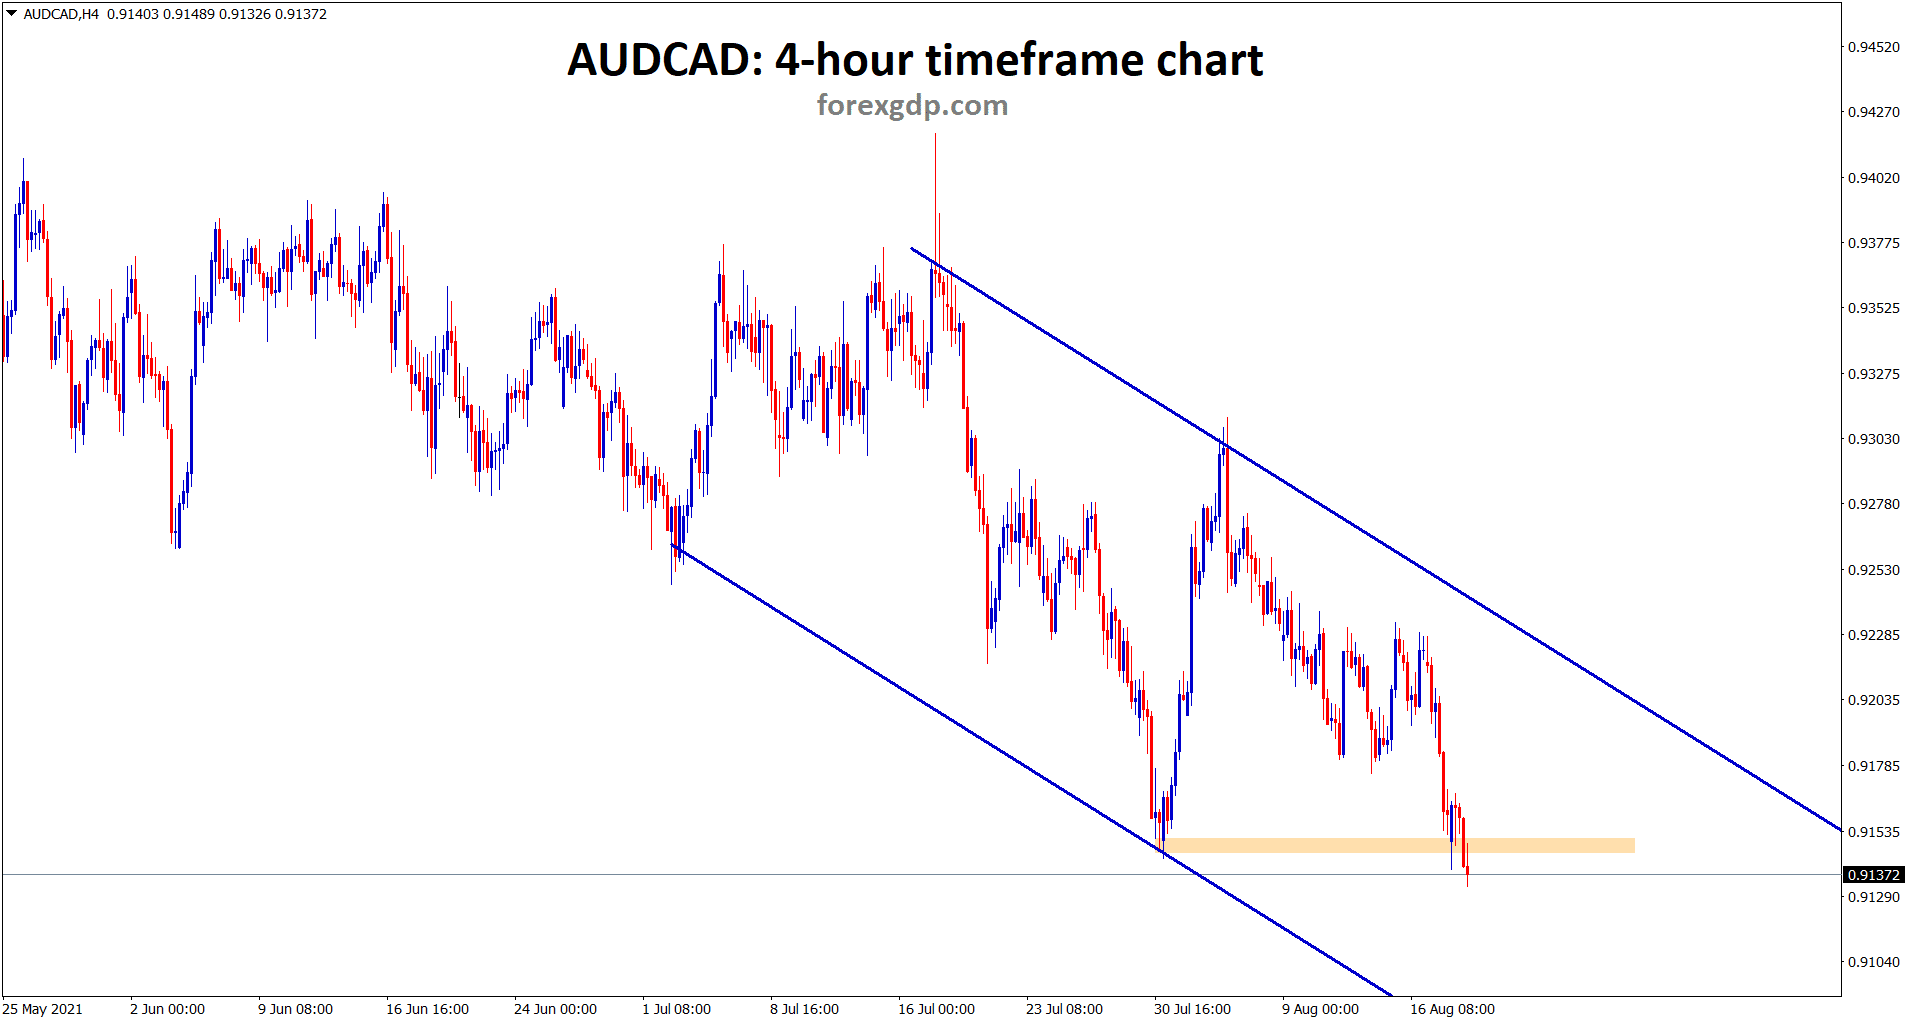 AUDCAD is moving in descending channel and trying to break the horizontal support.